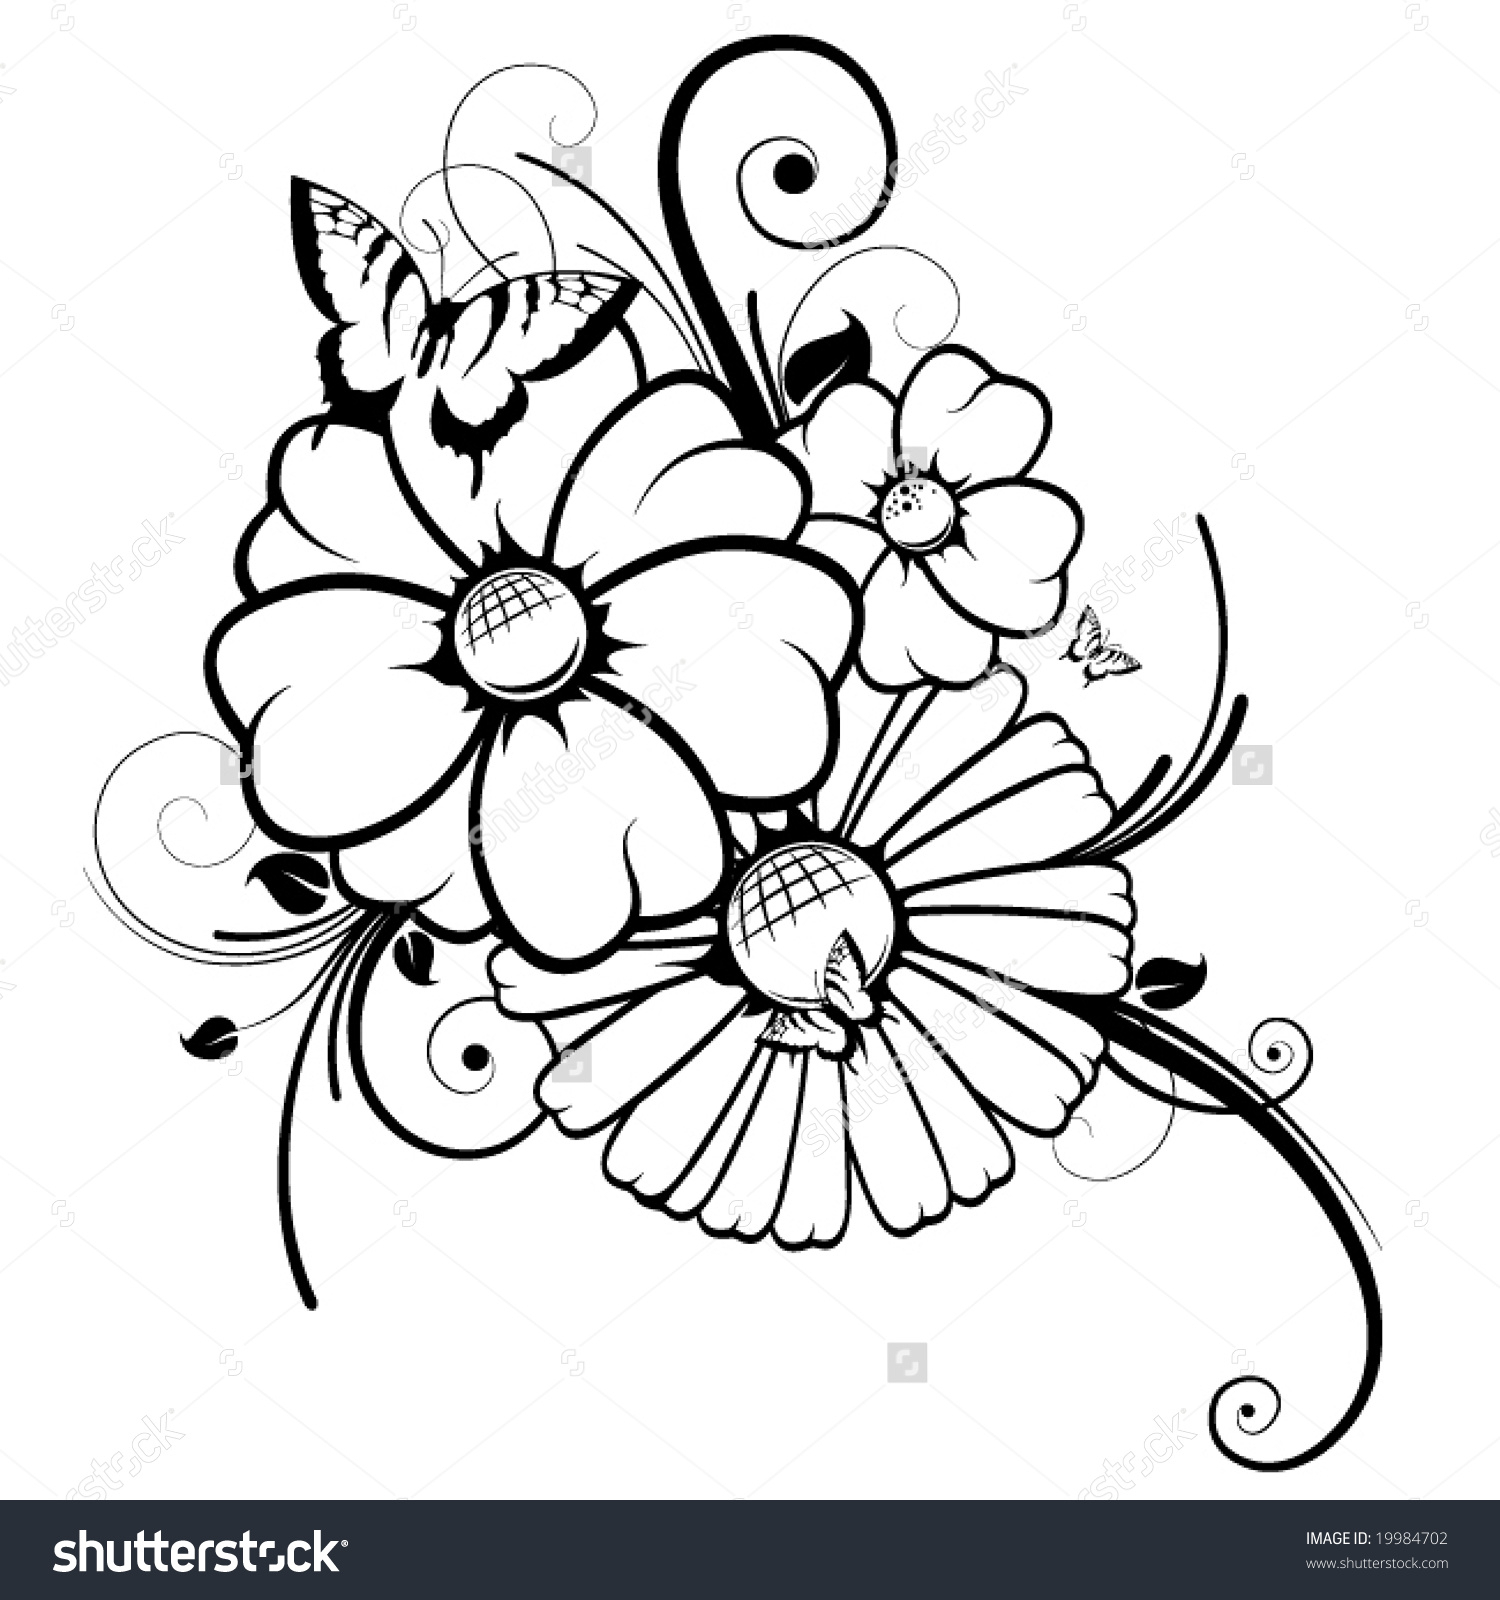 1500x1600 Drawing Flowers And Butterflies Flowers For Flower And Butterfly